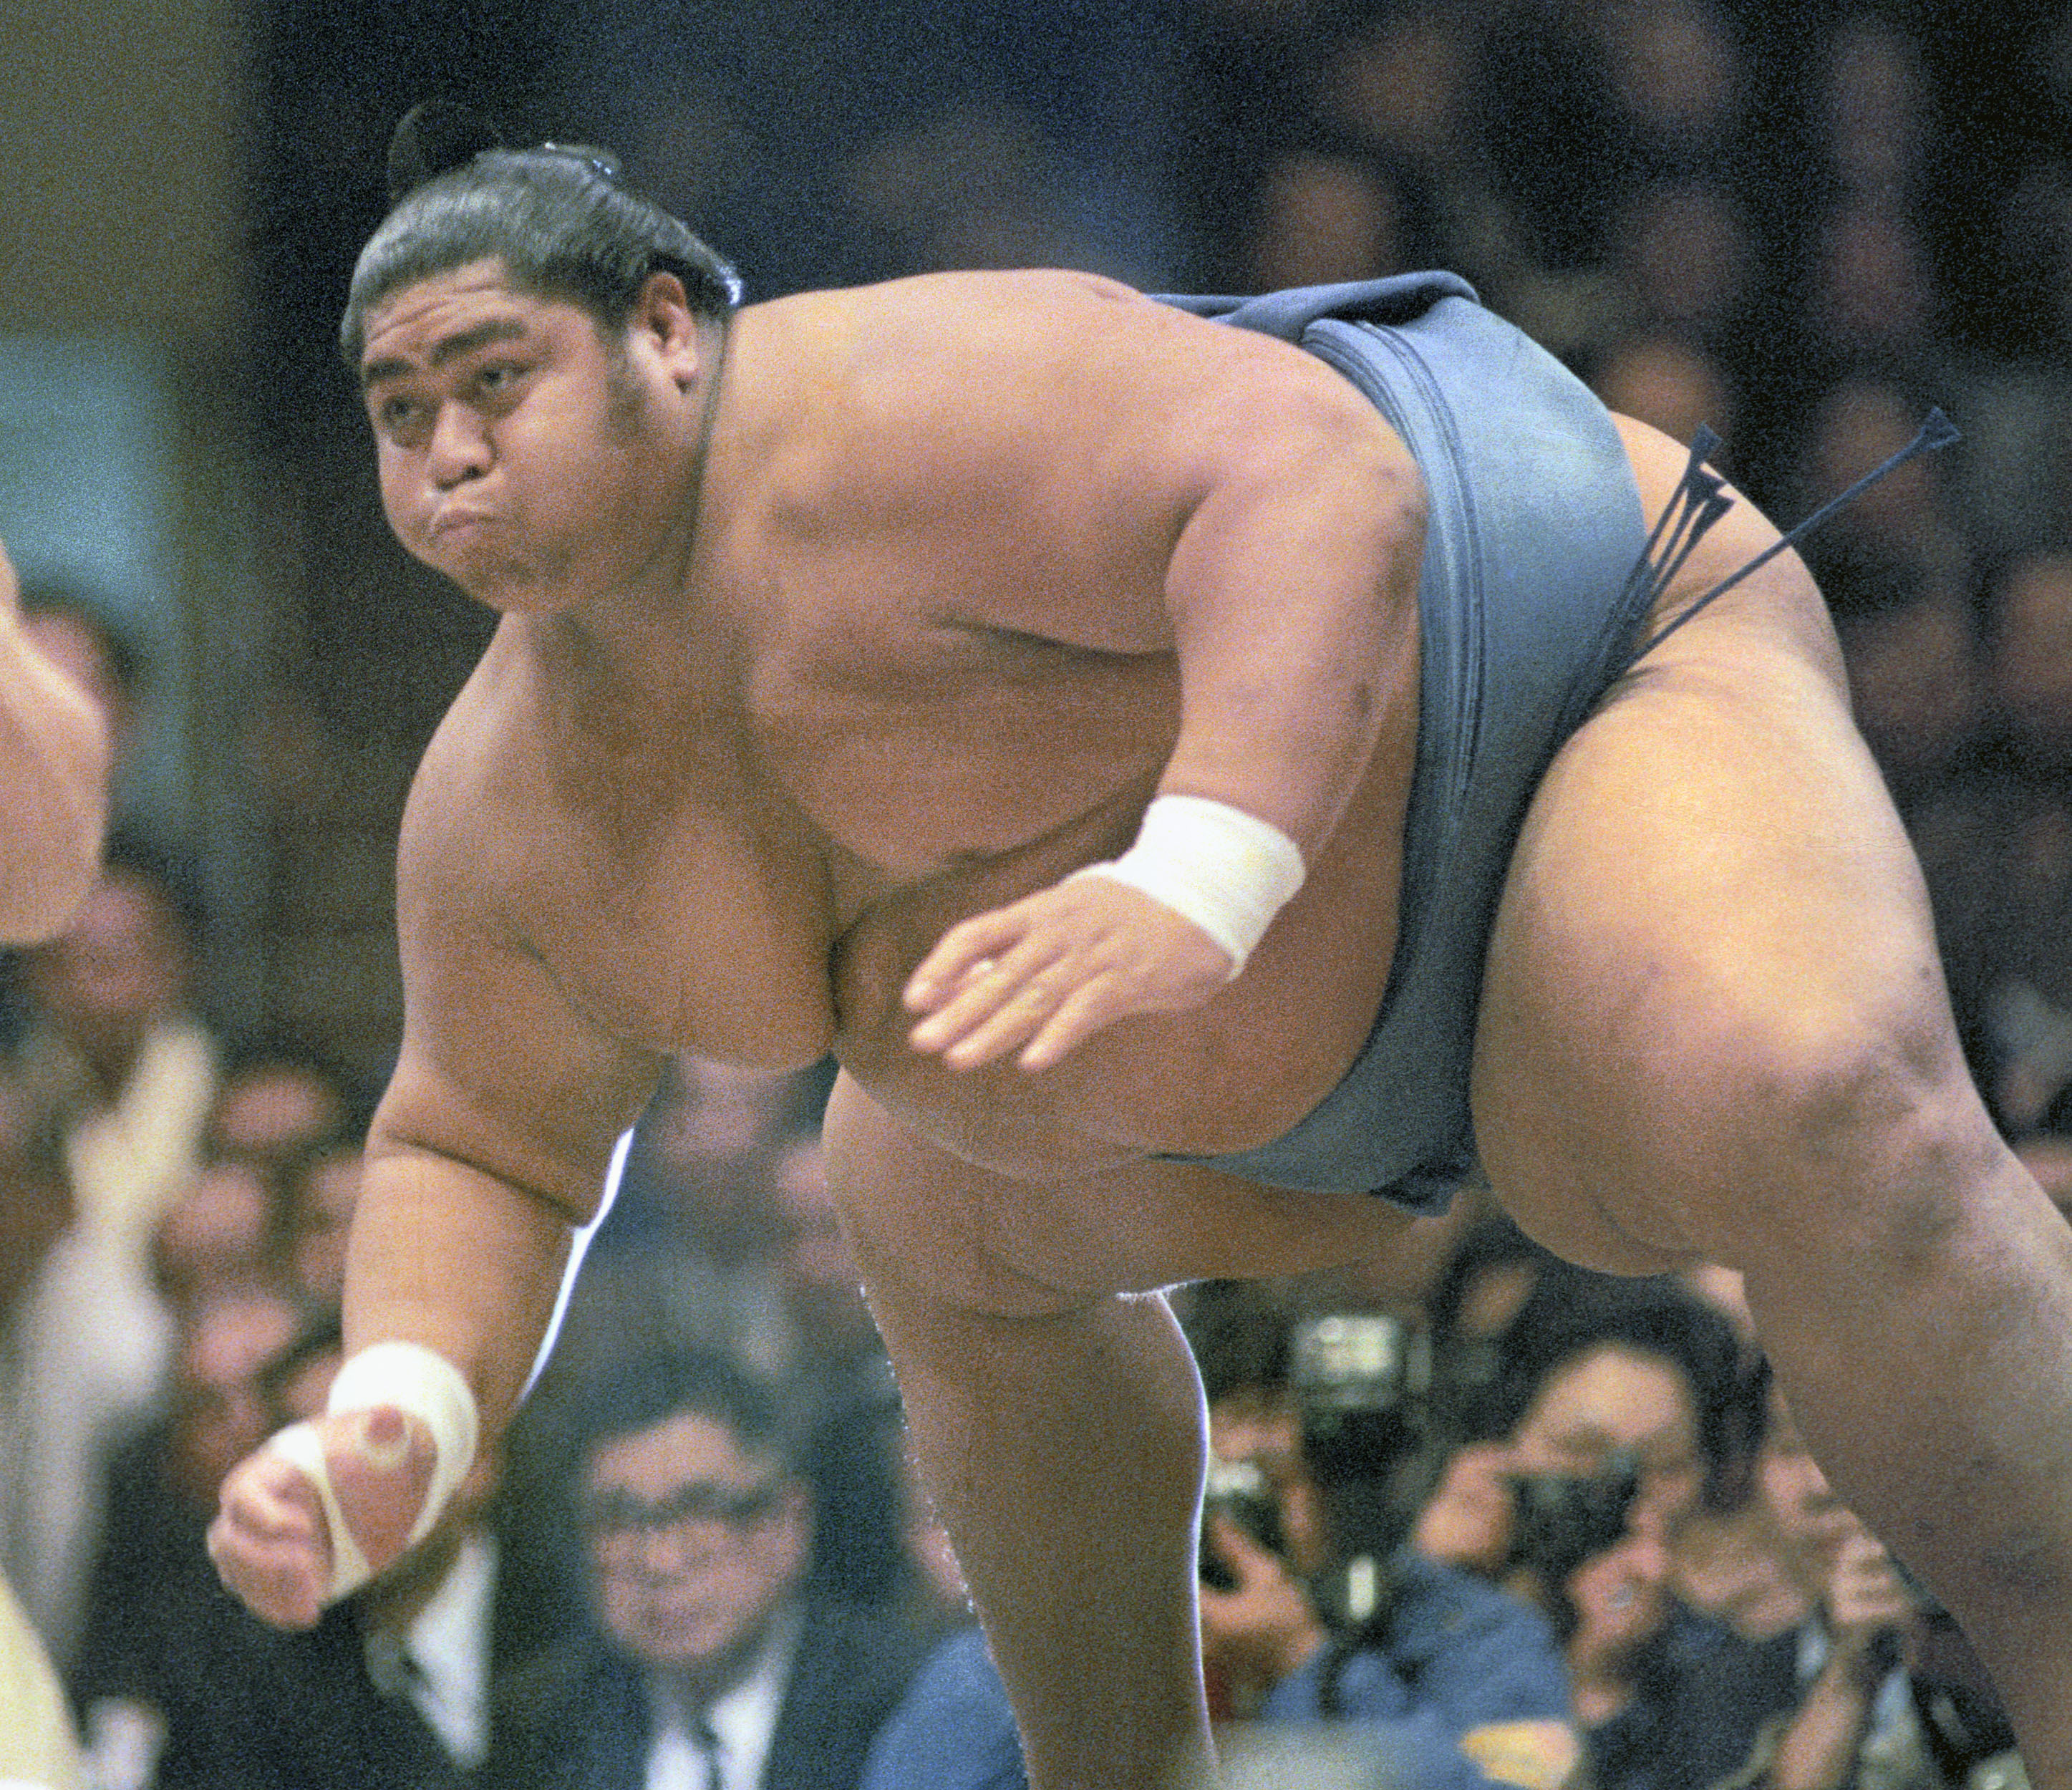 Image result for sumo wrestler images